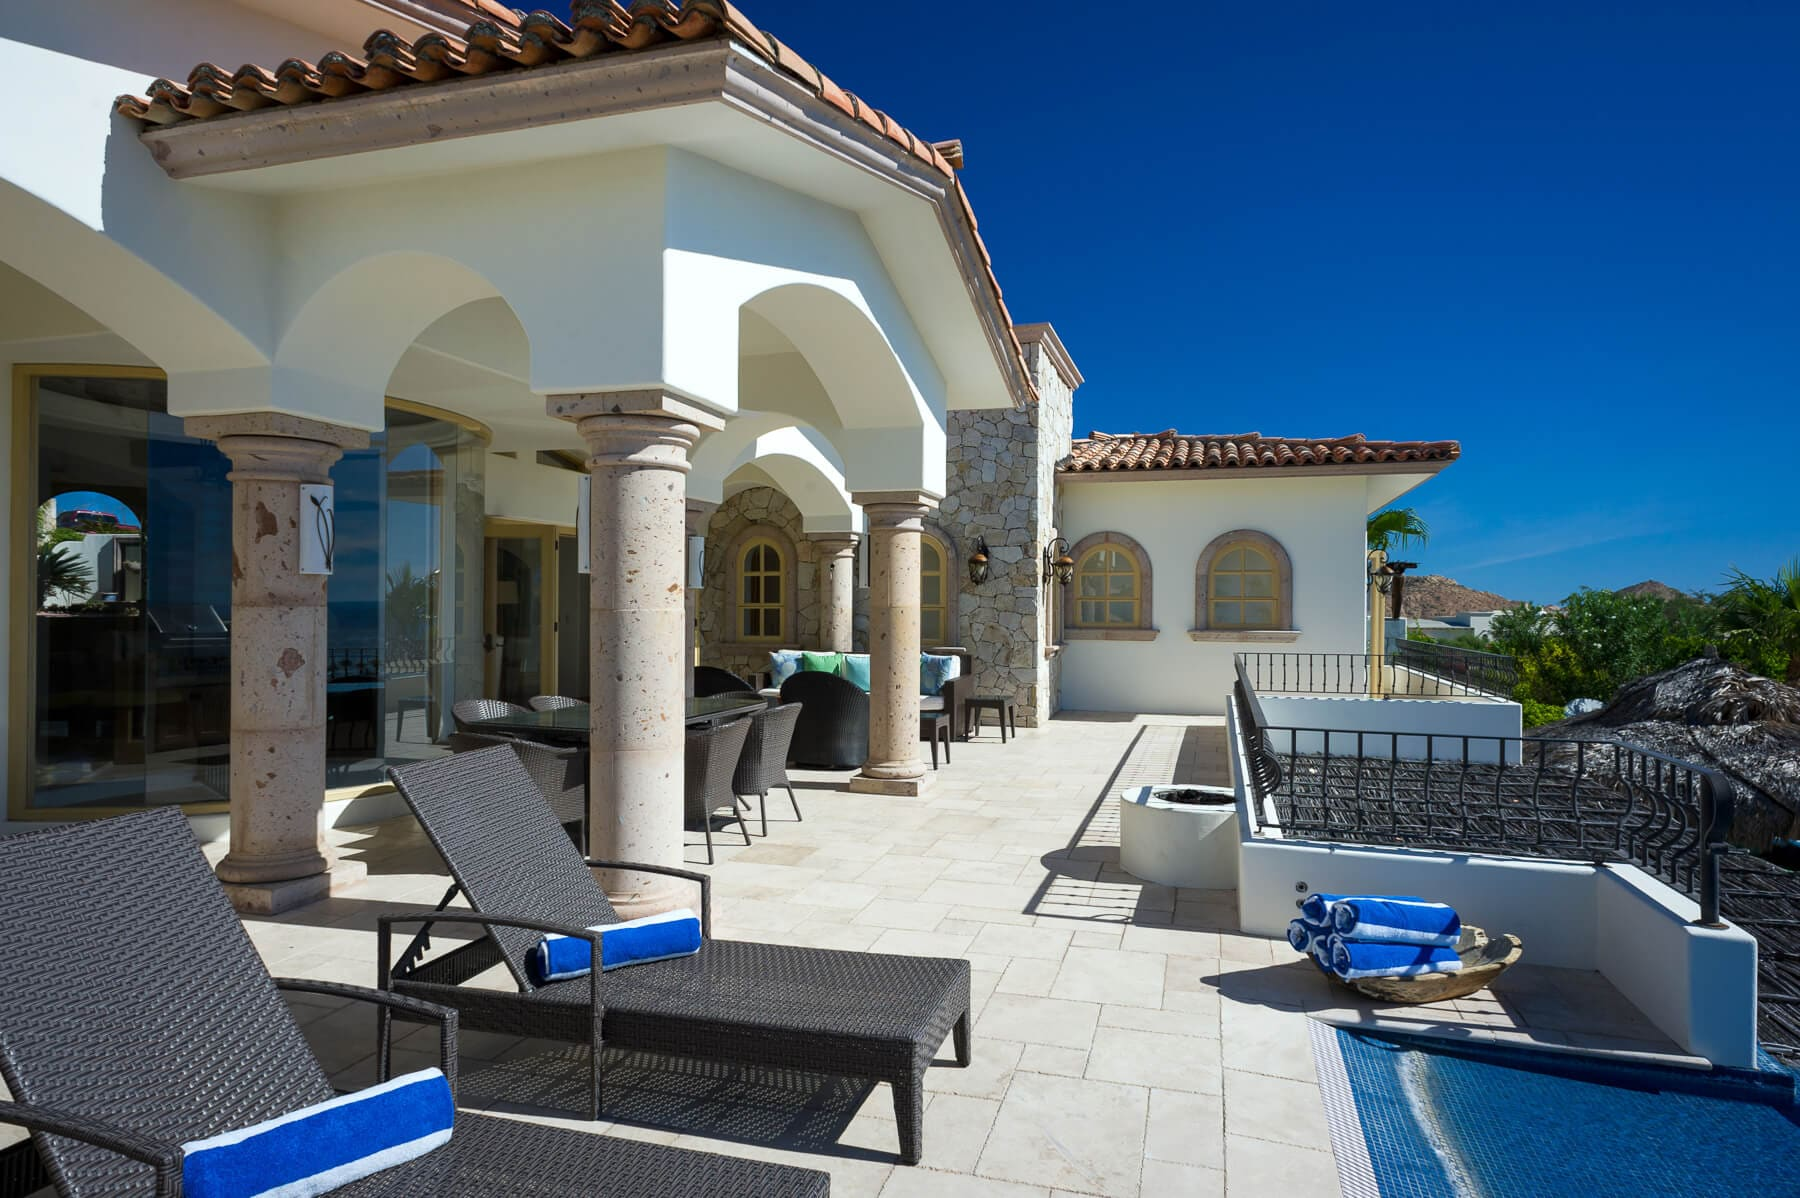 Property Image 2 - Spectacular Dream Villa Especially for Golfers in Baja California